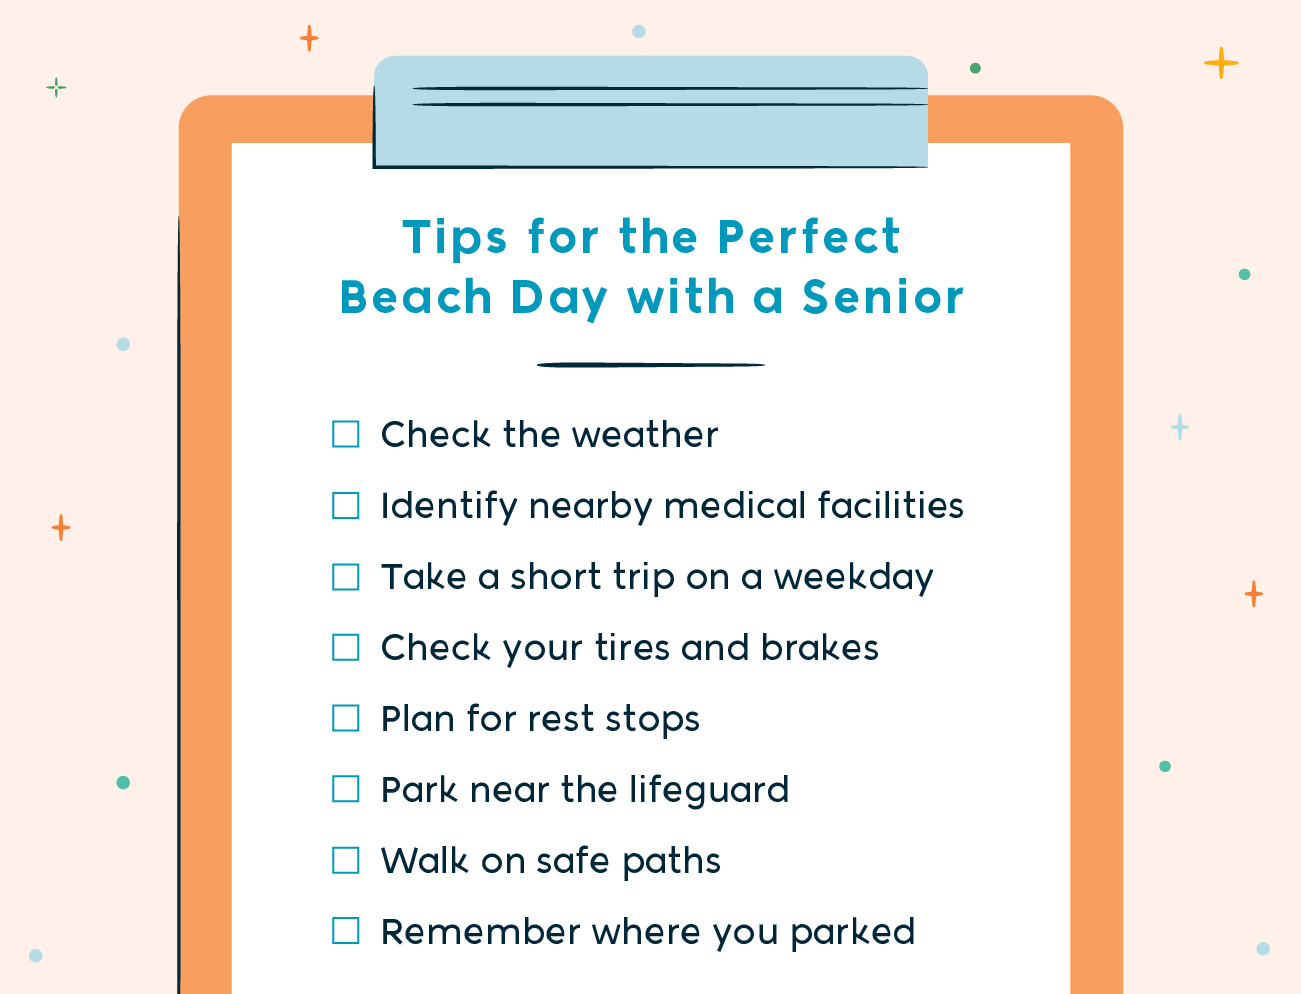 tips for the perfect beach day with a senior